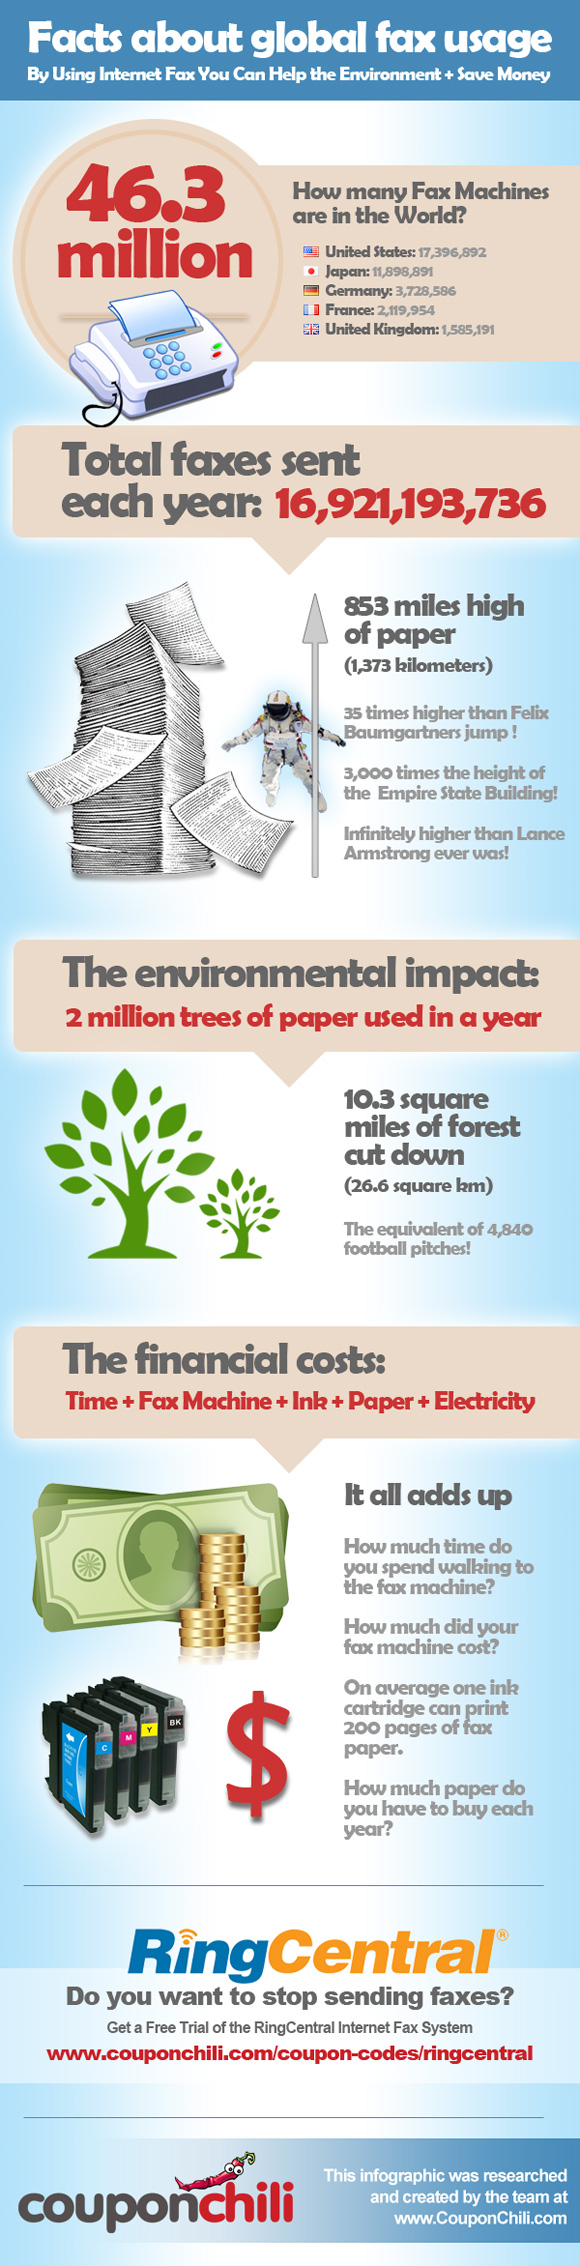 The Impact of Global Fax Usage Infographic